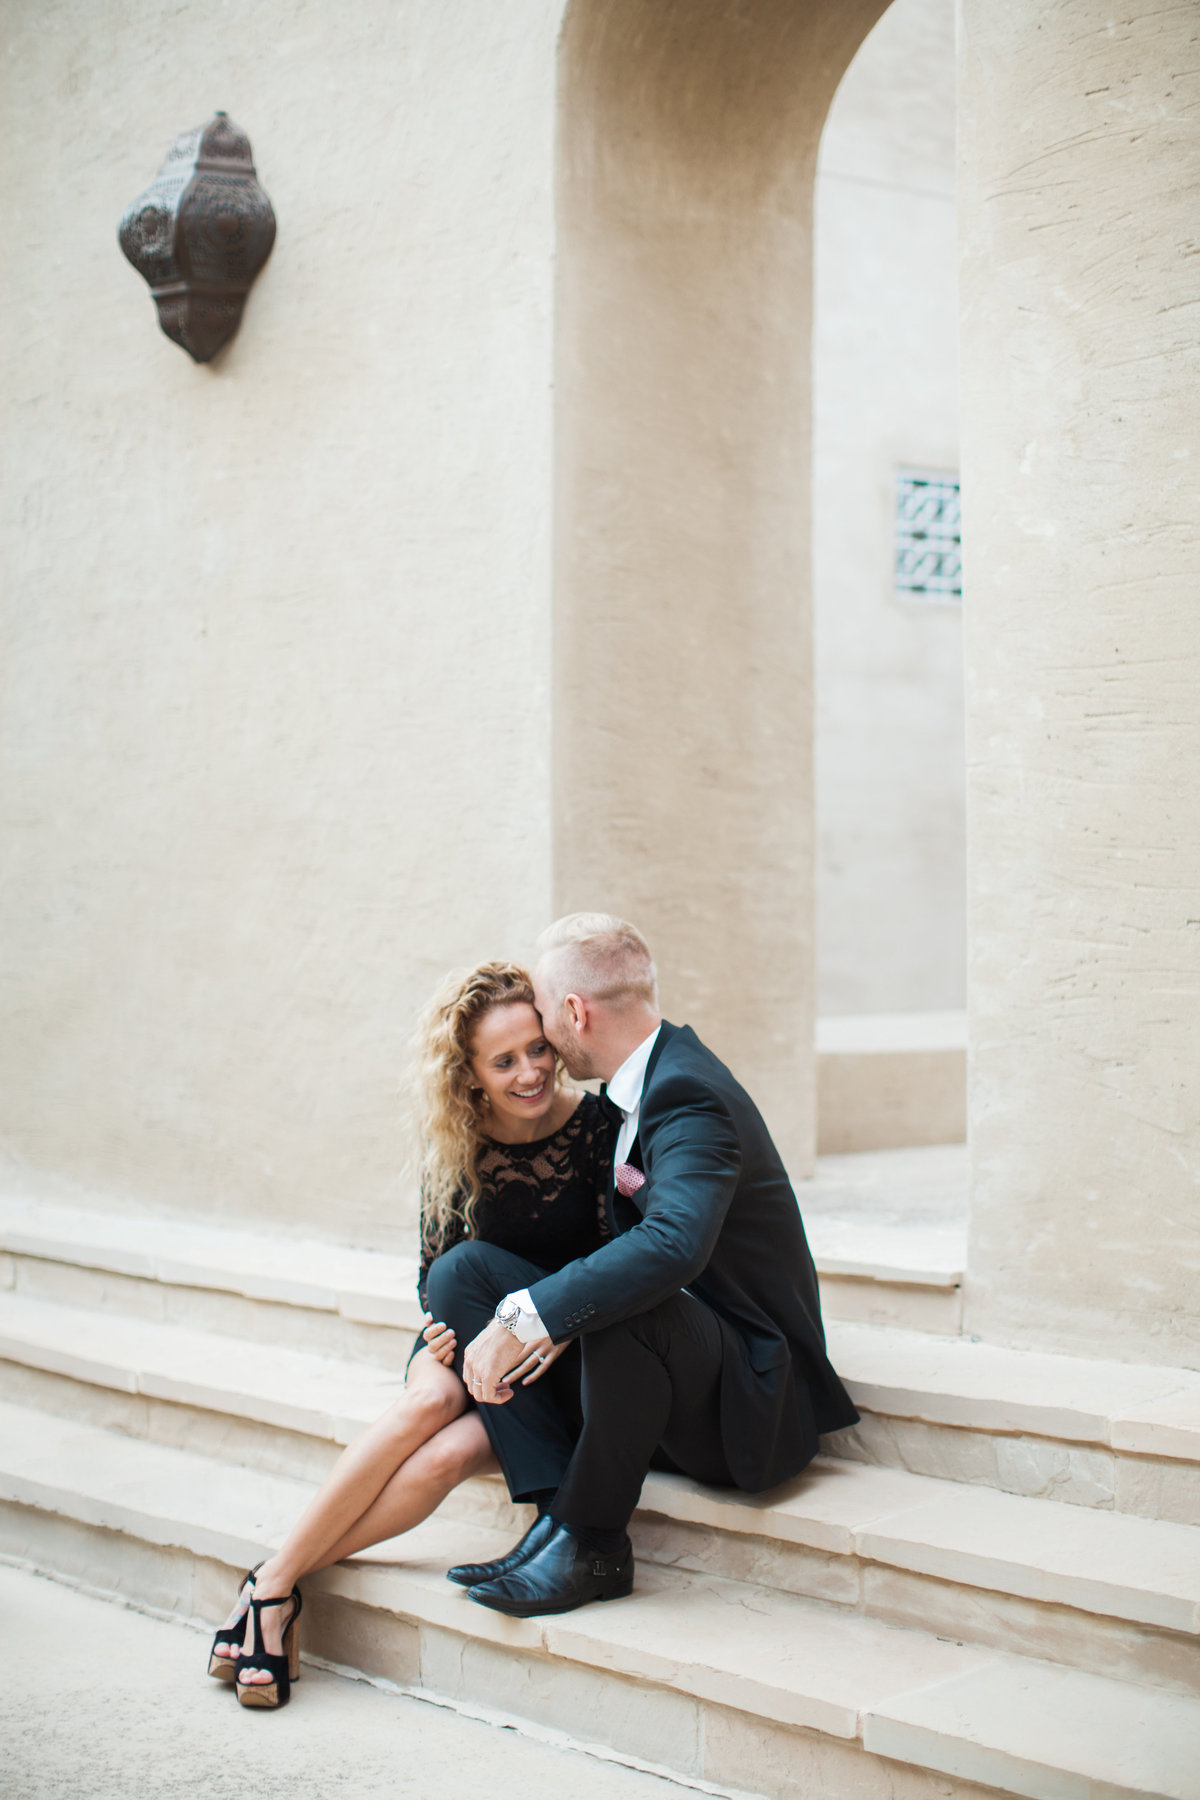 MariaSundinPhotography_engagement_bab_al_shams_carl_ellie-100